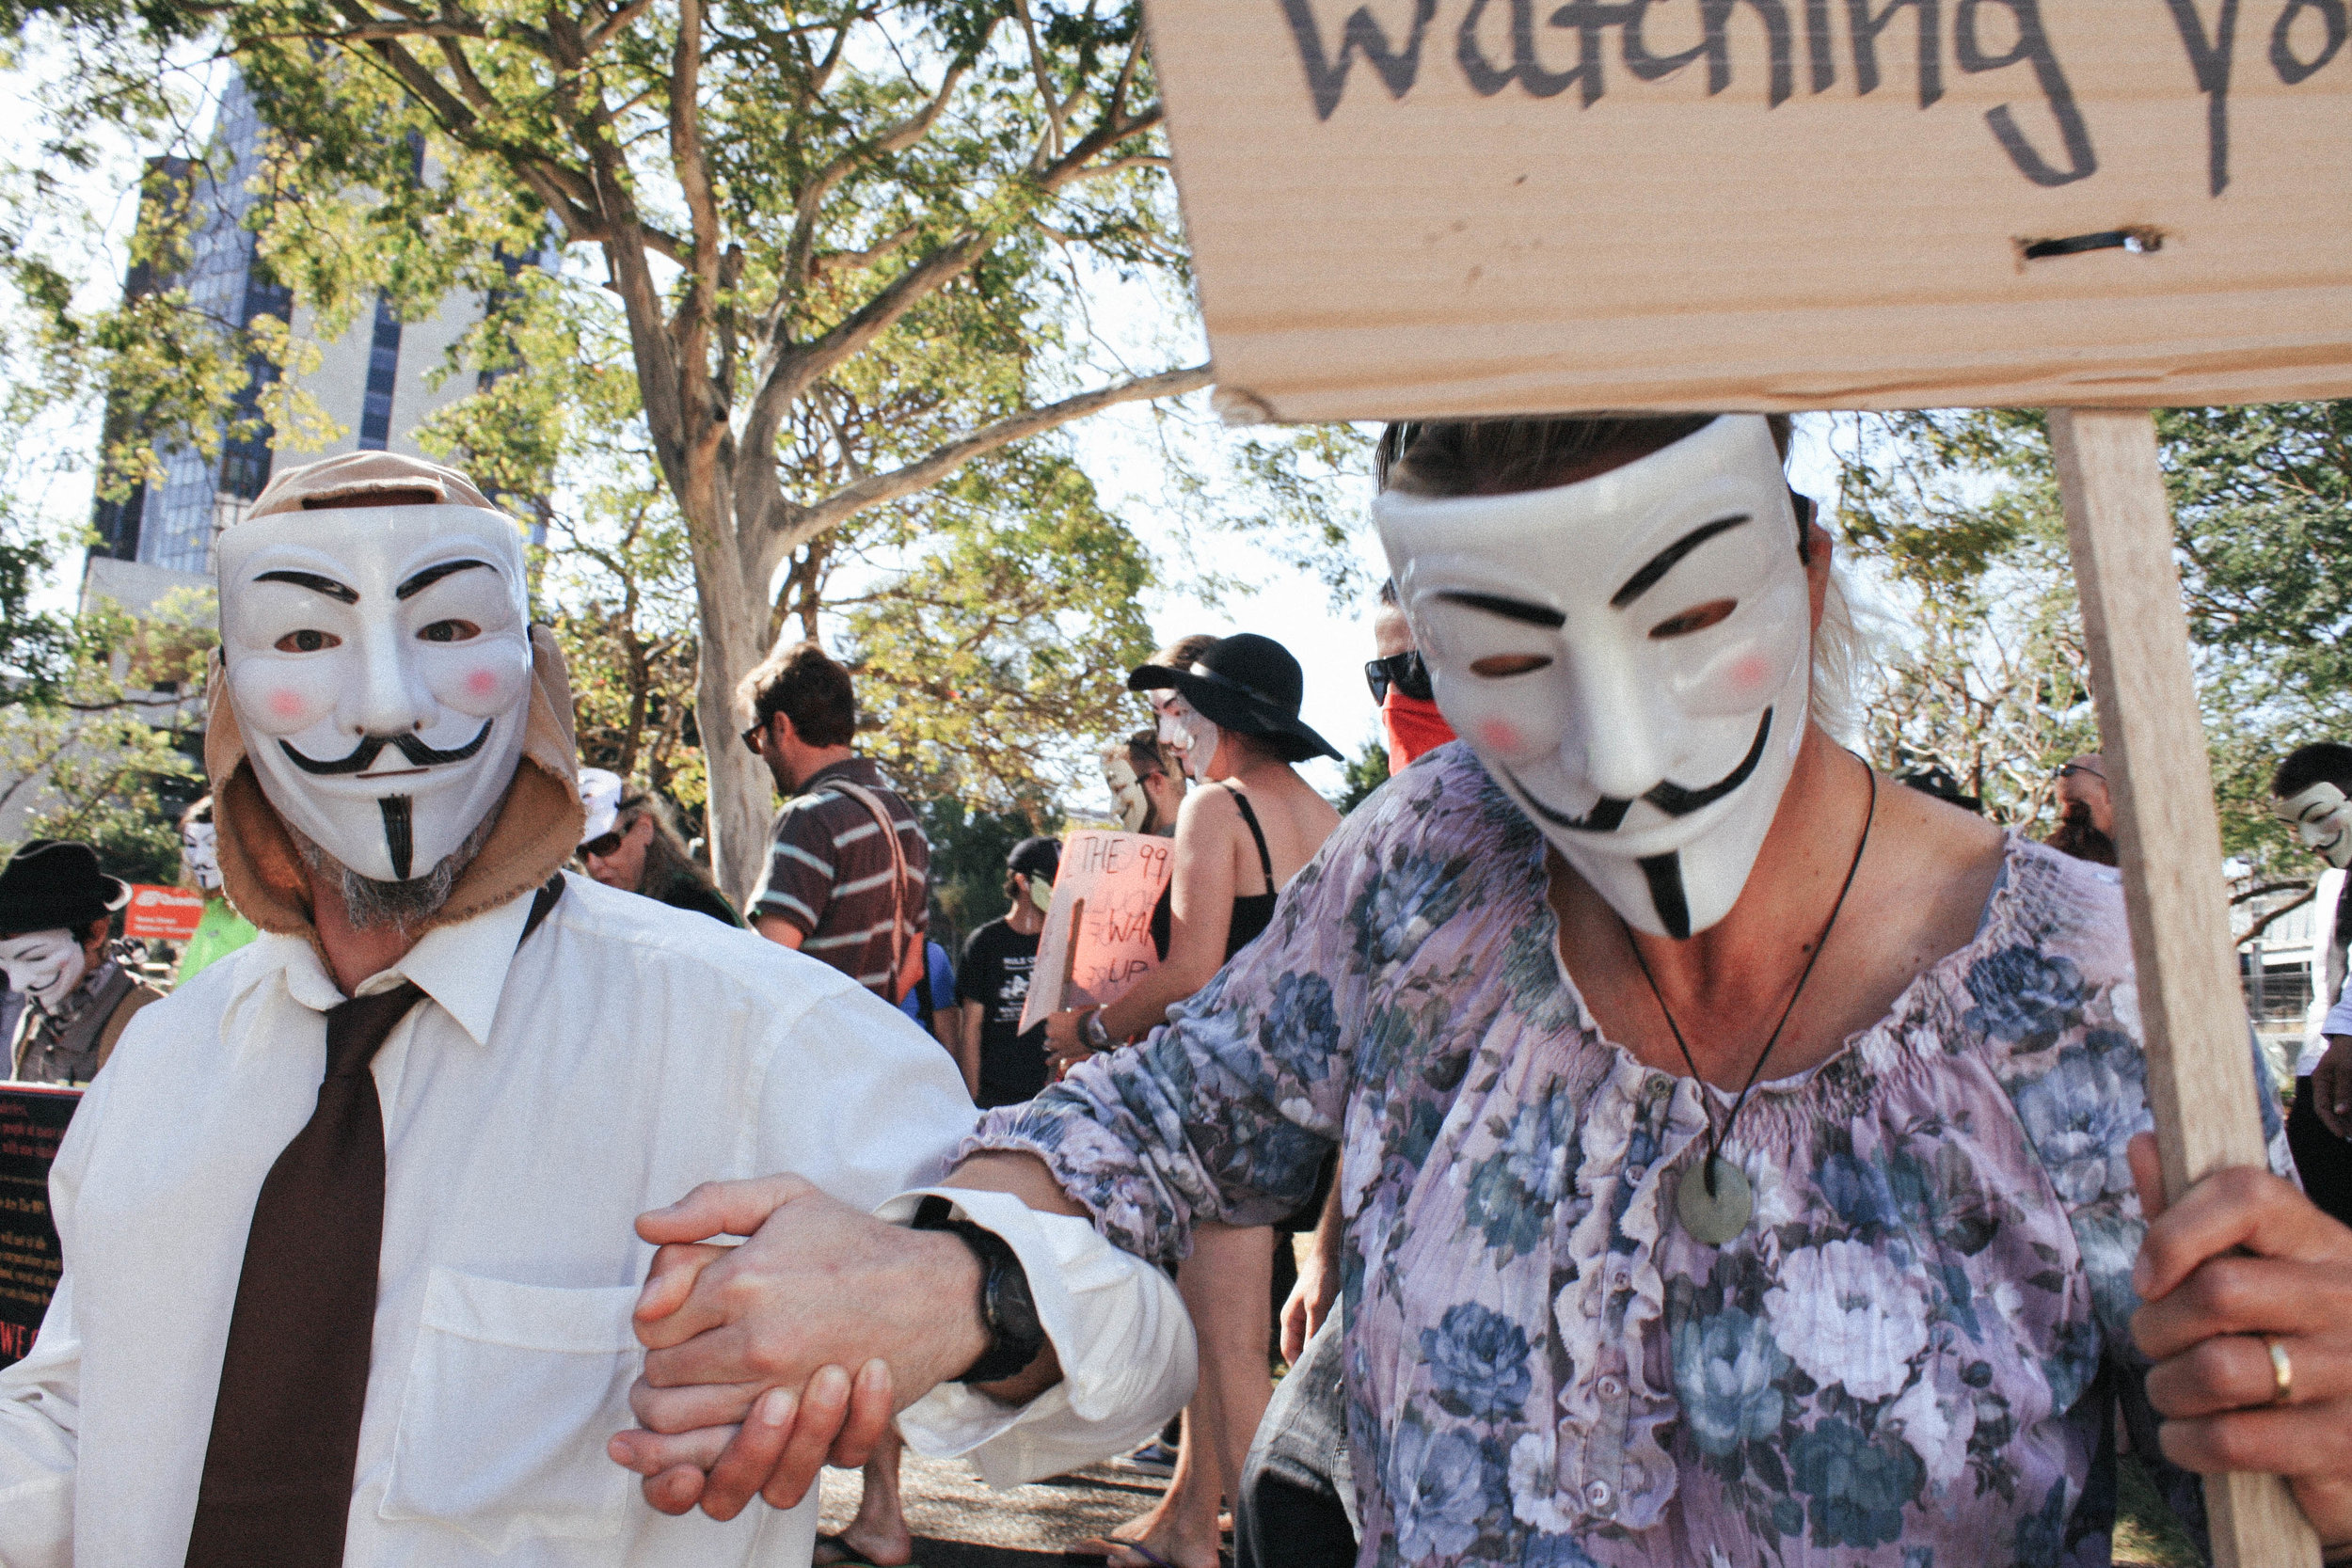 Lesly Lotha_Newzulu_Million_Mask_March_Brisbane_Australia_06